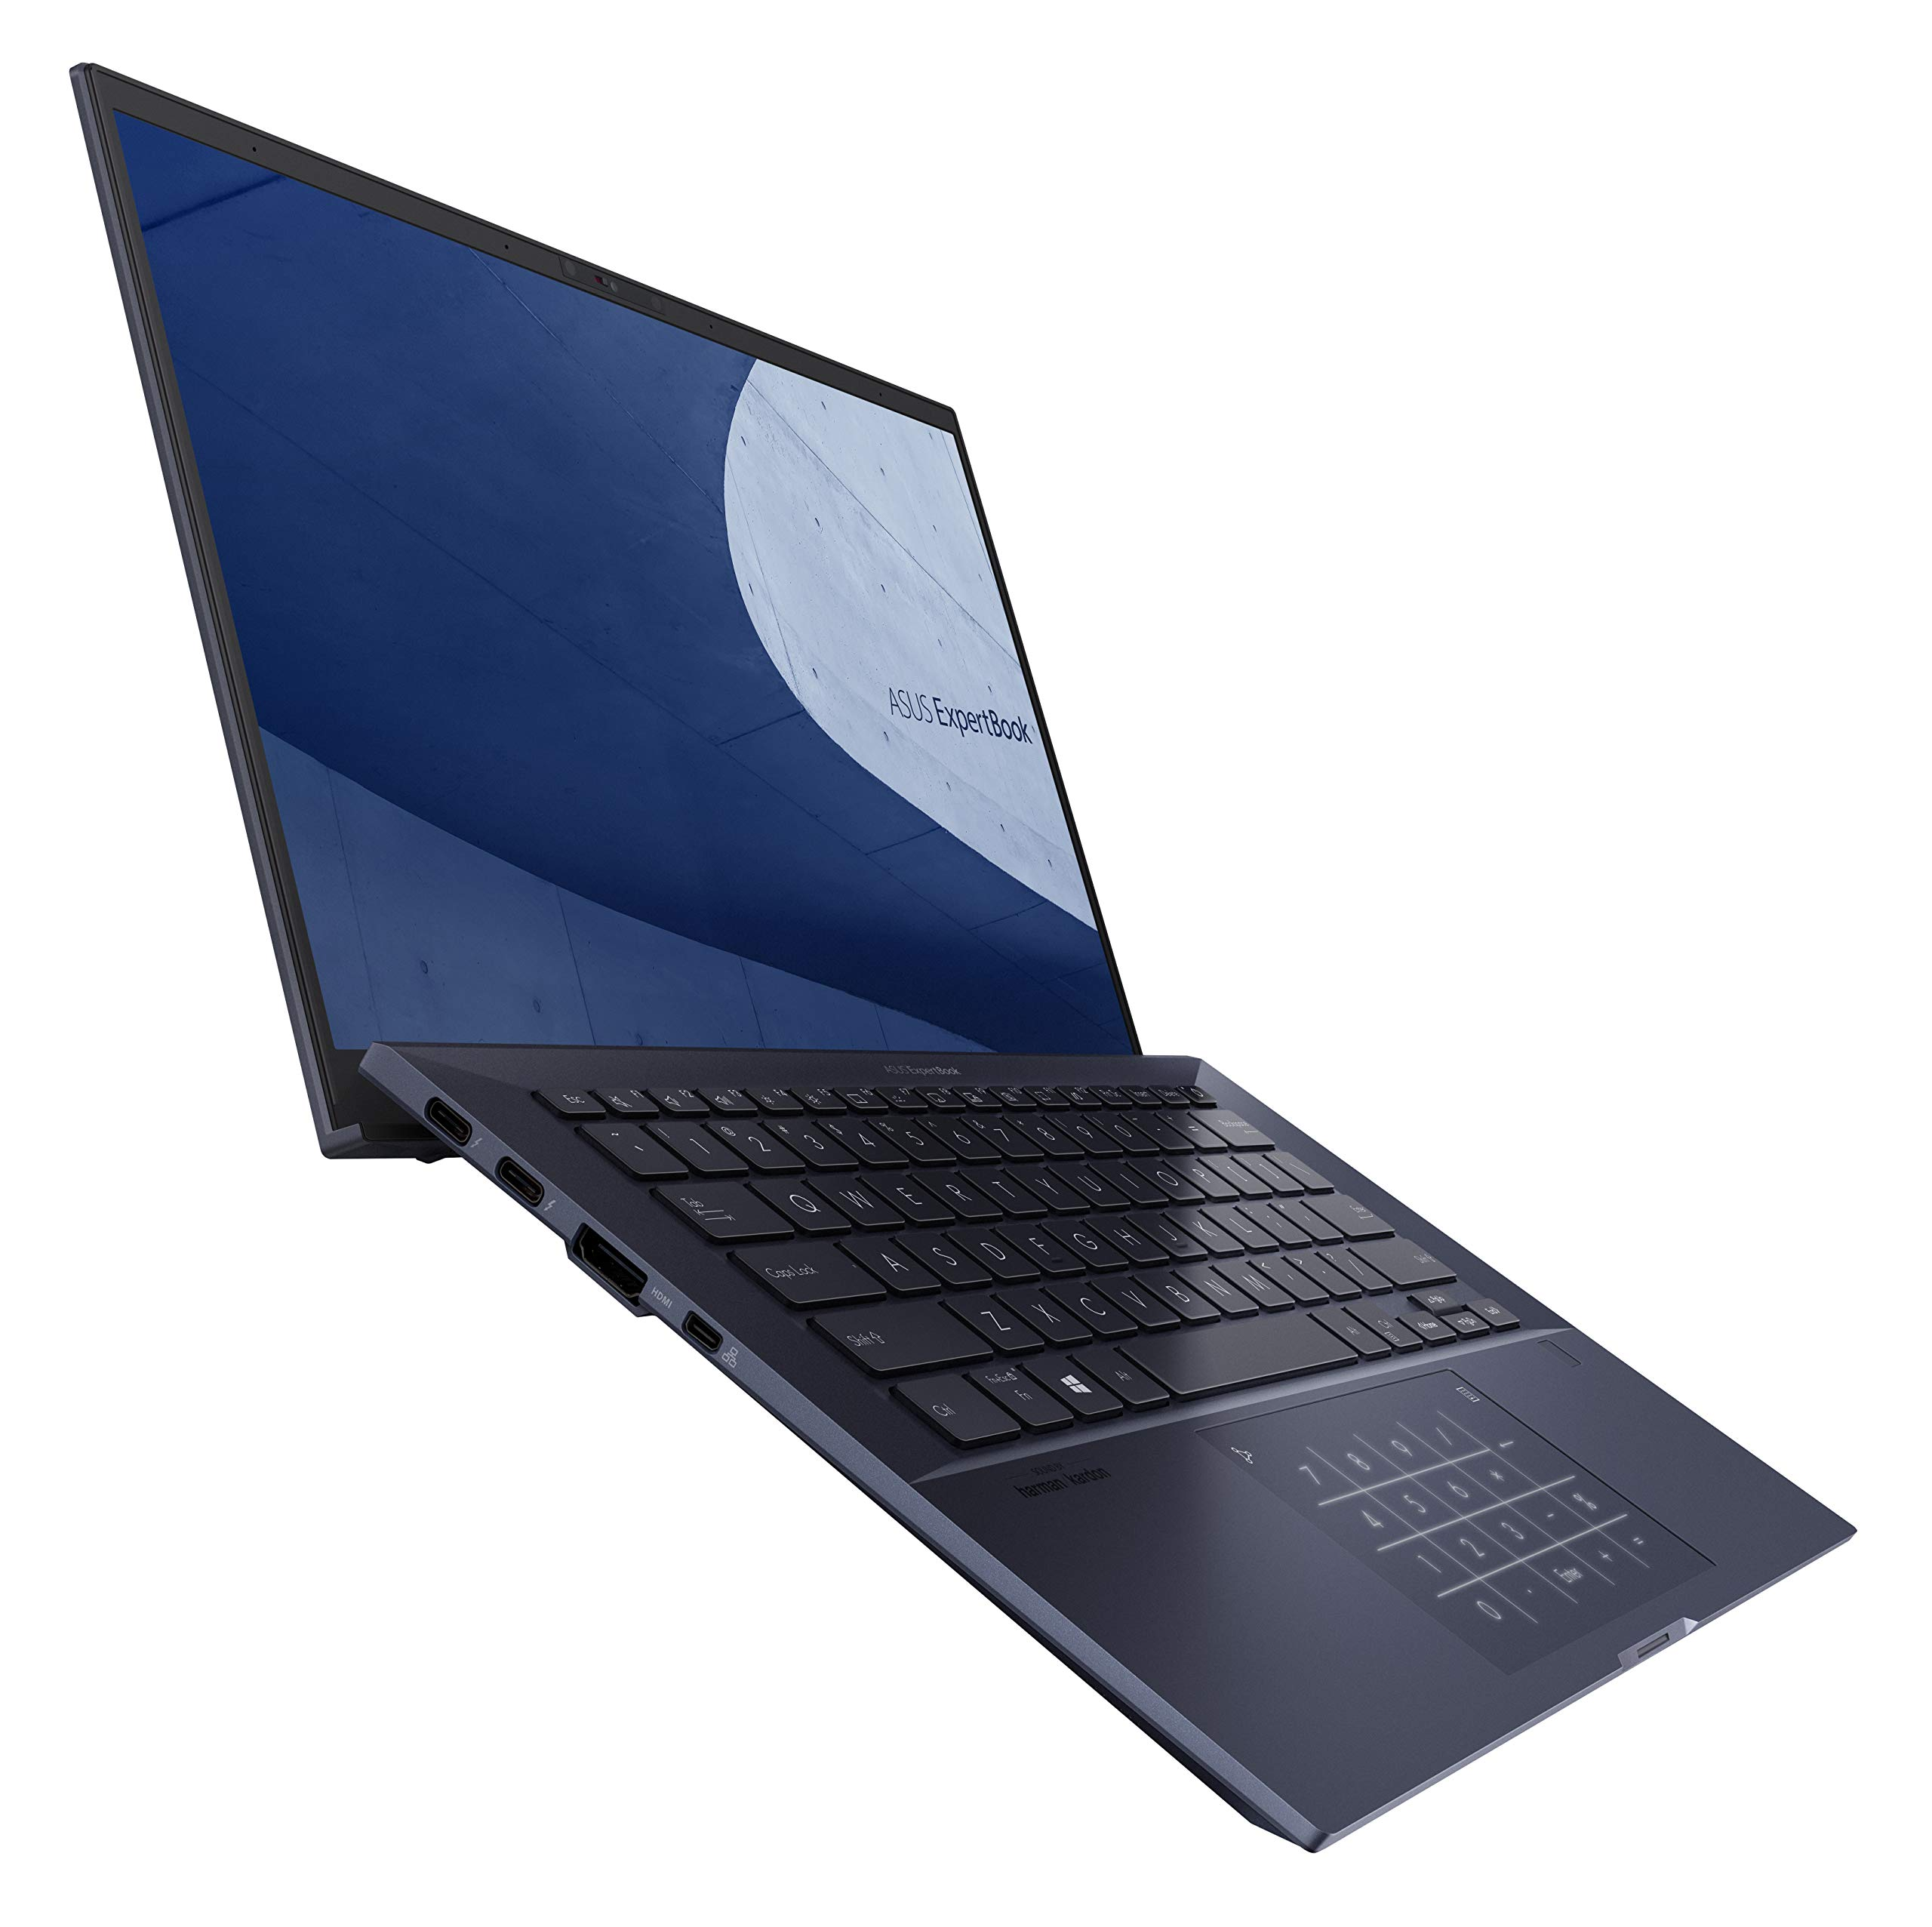 """ASUS ExpertBook B9 Thin Light Business Laptop 14"""" FHD Intel Core i7-10510U 512GB SSD 16GB RAM Military Grade Durable Up to 24hr Battery Webcam Privacy Shield Win 10 Pro Black B9450FA-XS74"""